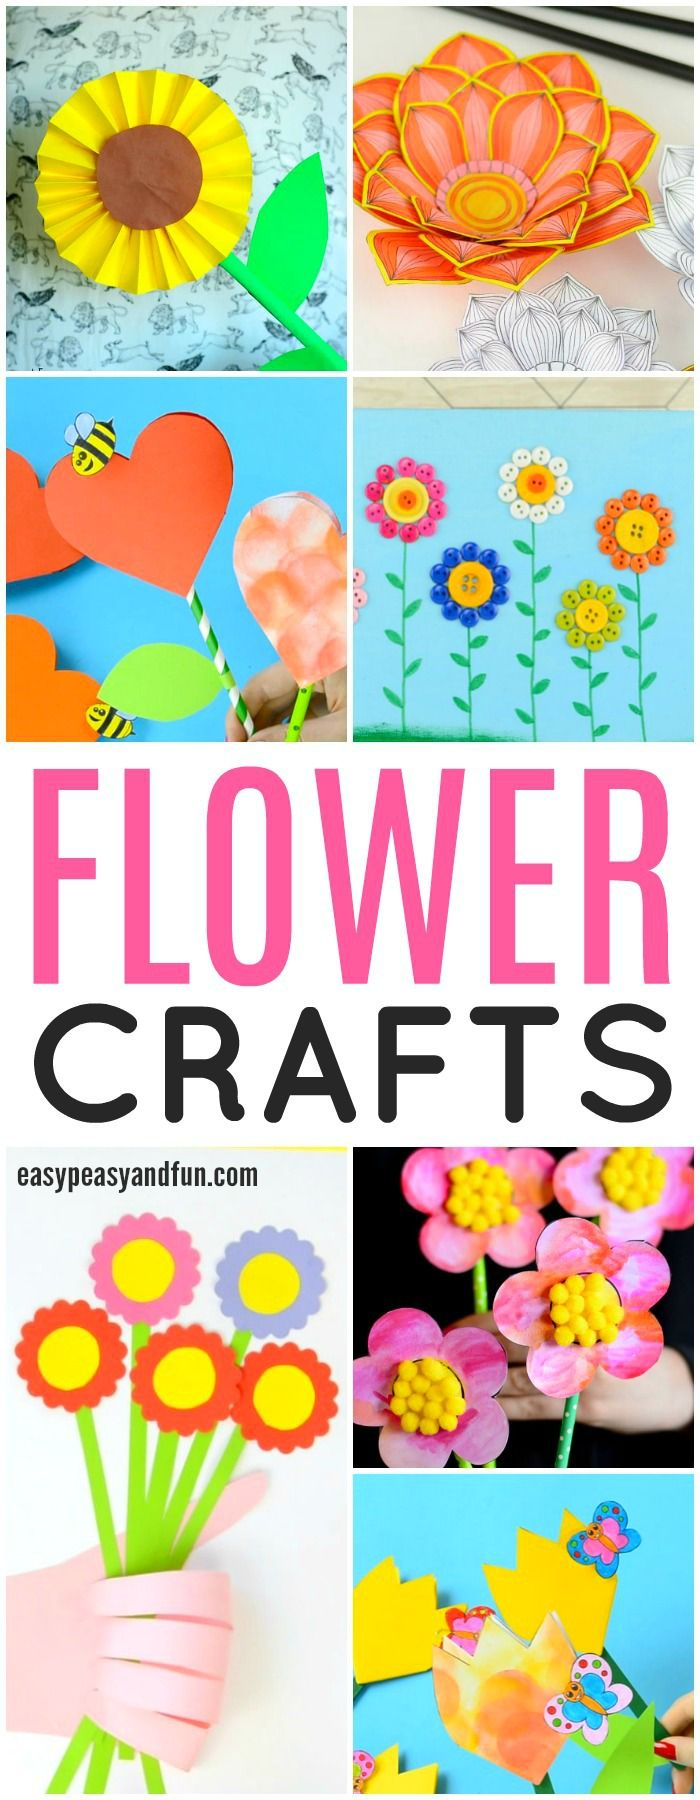 A lot of fun flower crafts for kids. Craft ideas and printable designs.